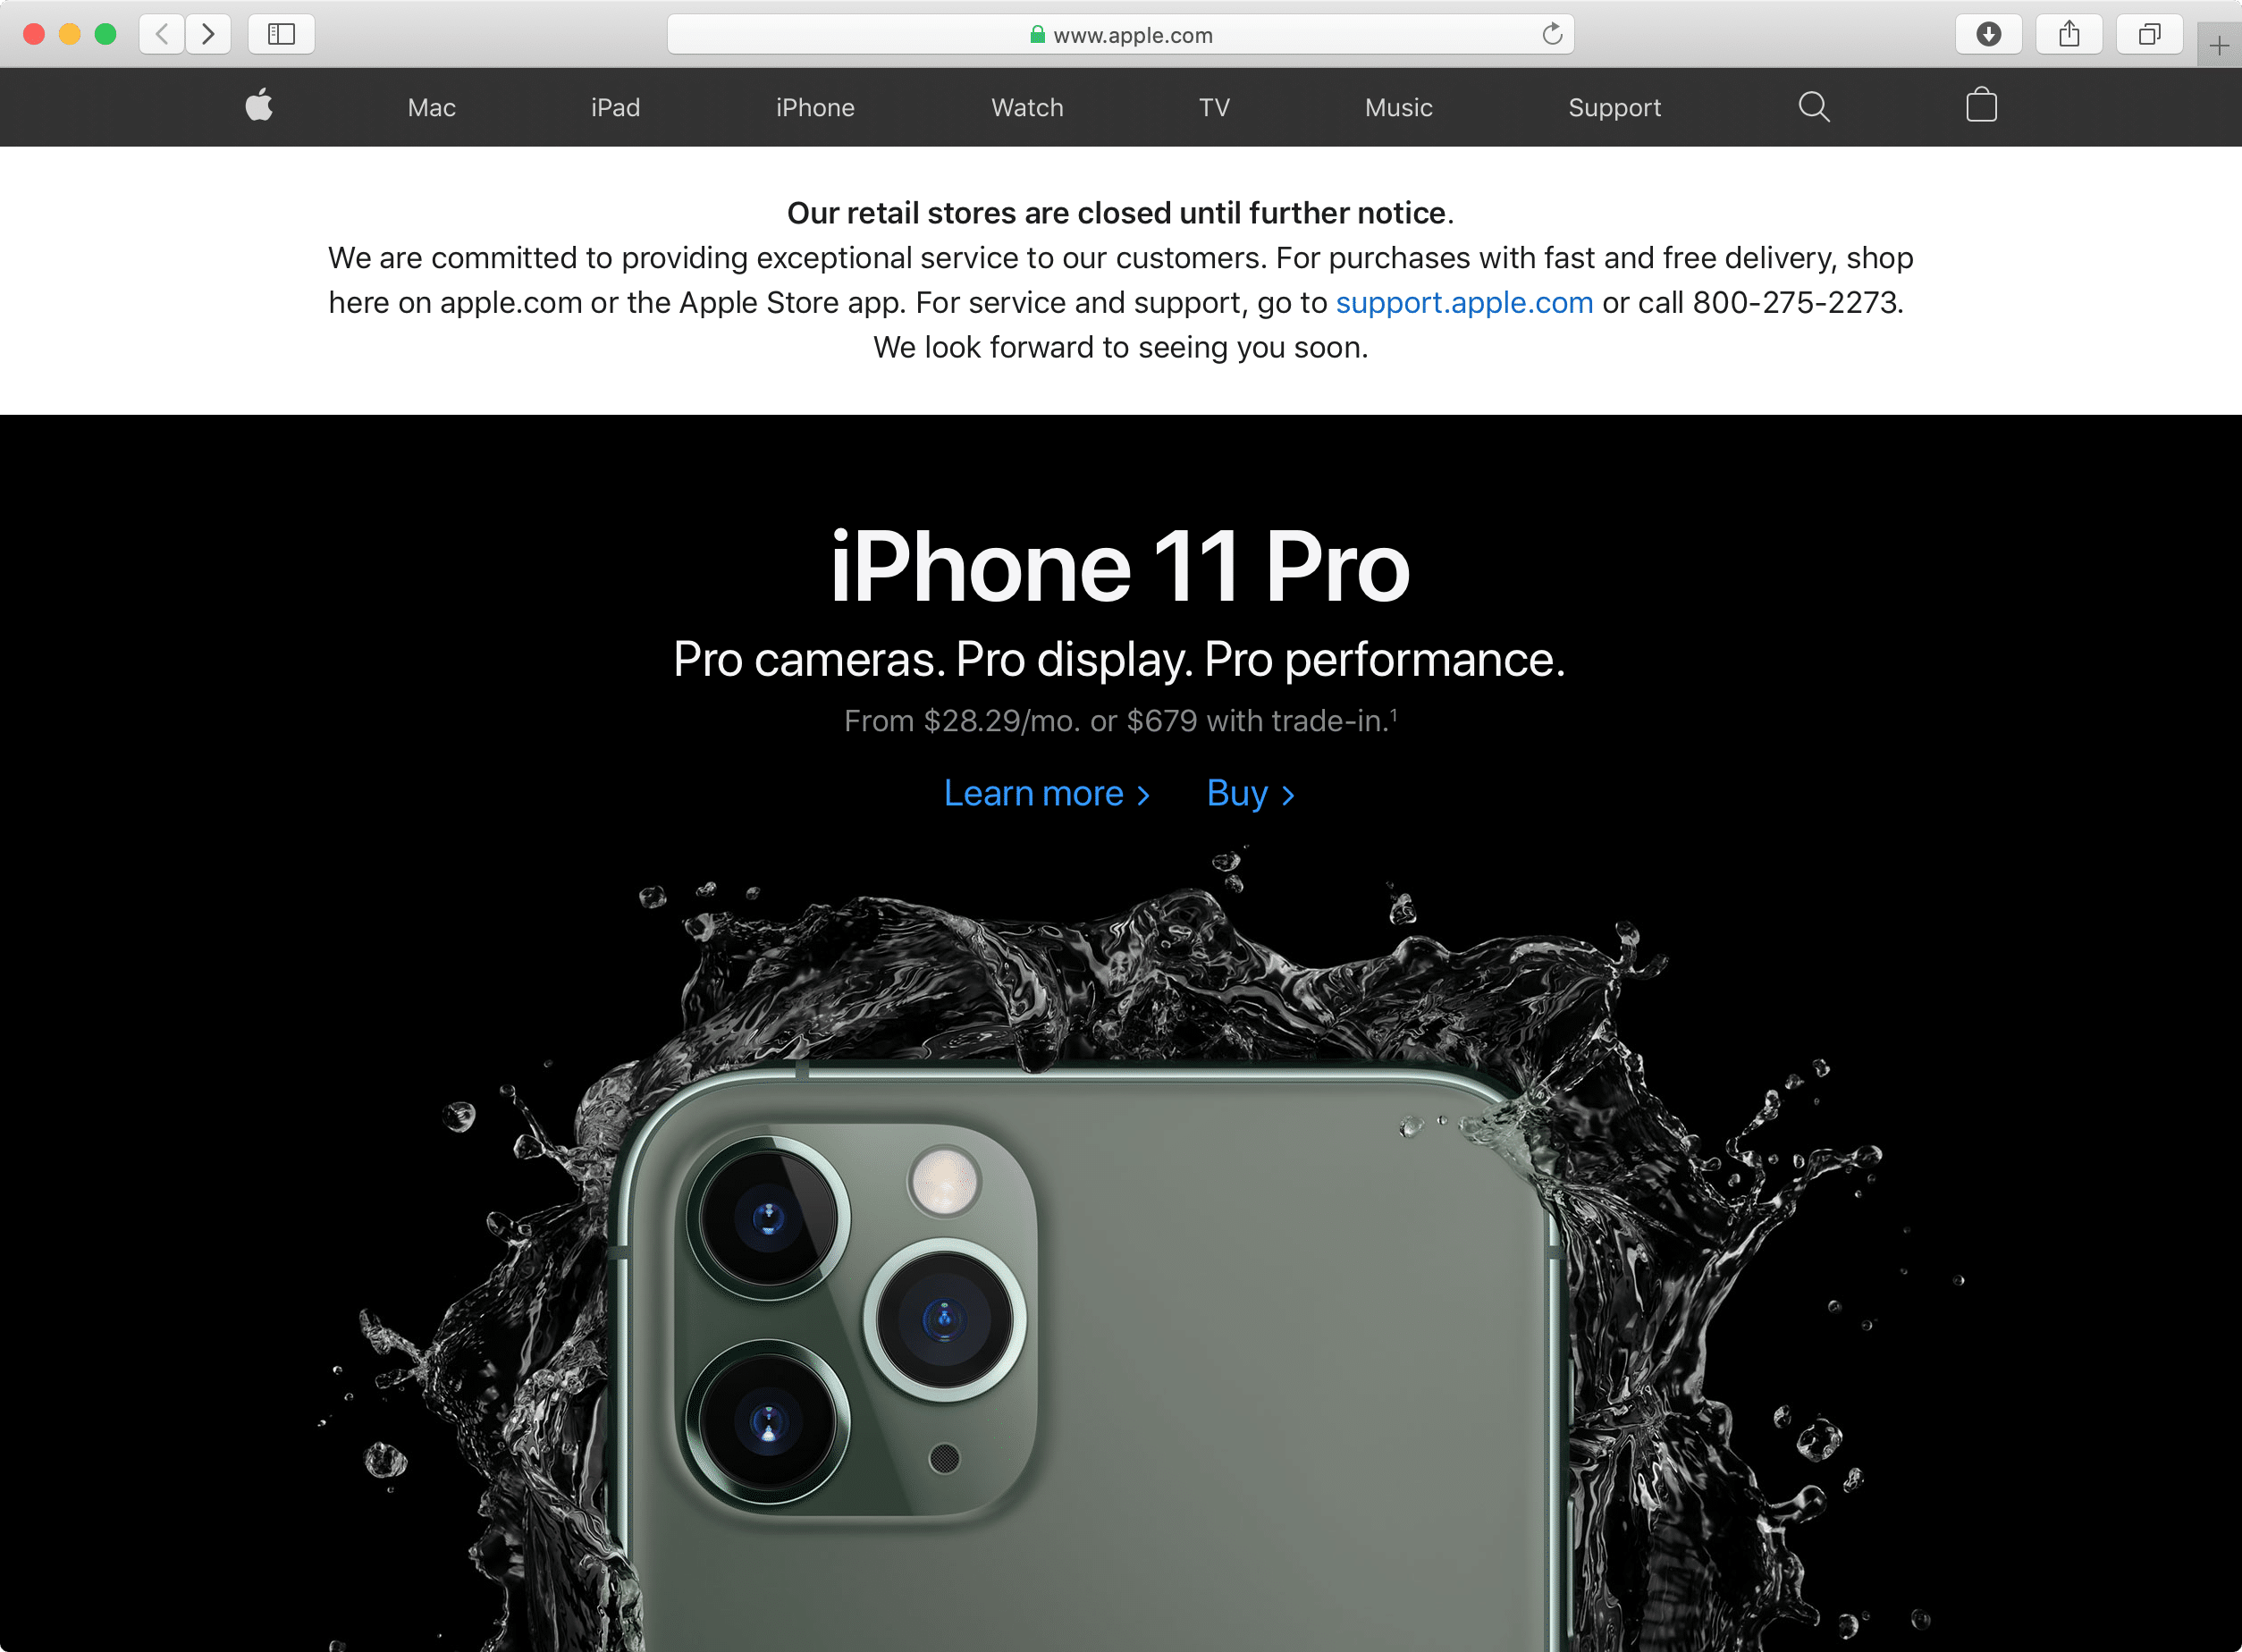 Aviso no Apple.com